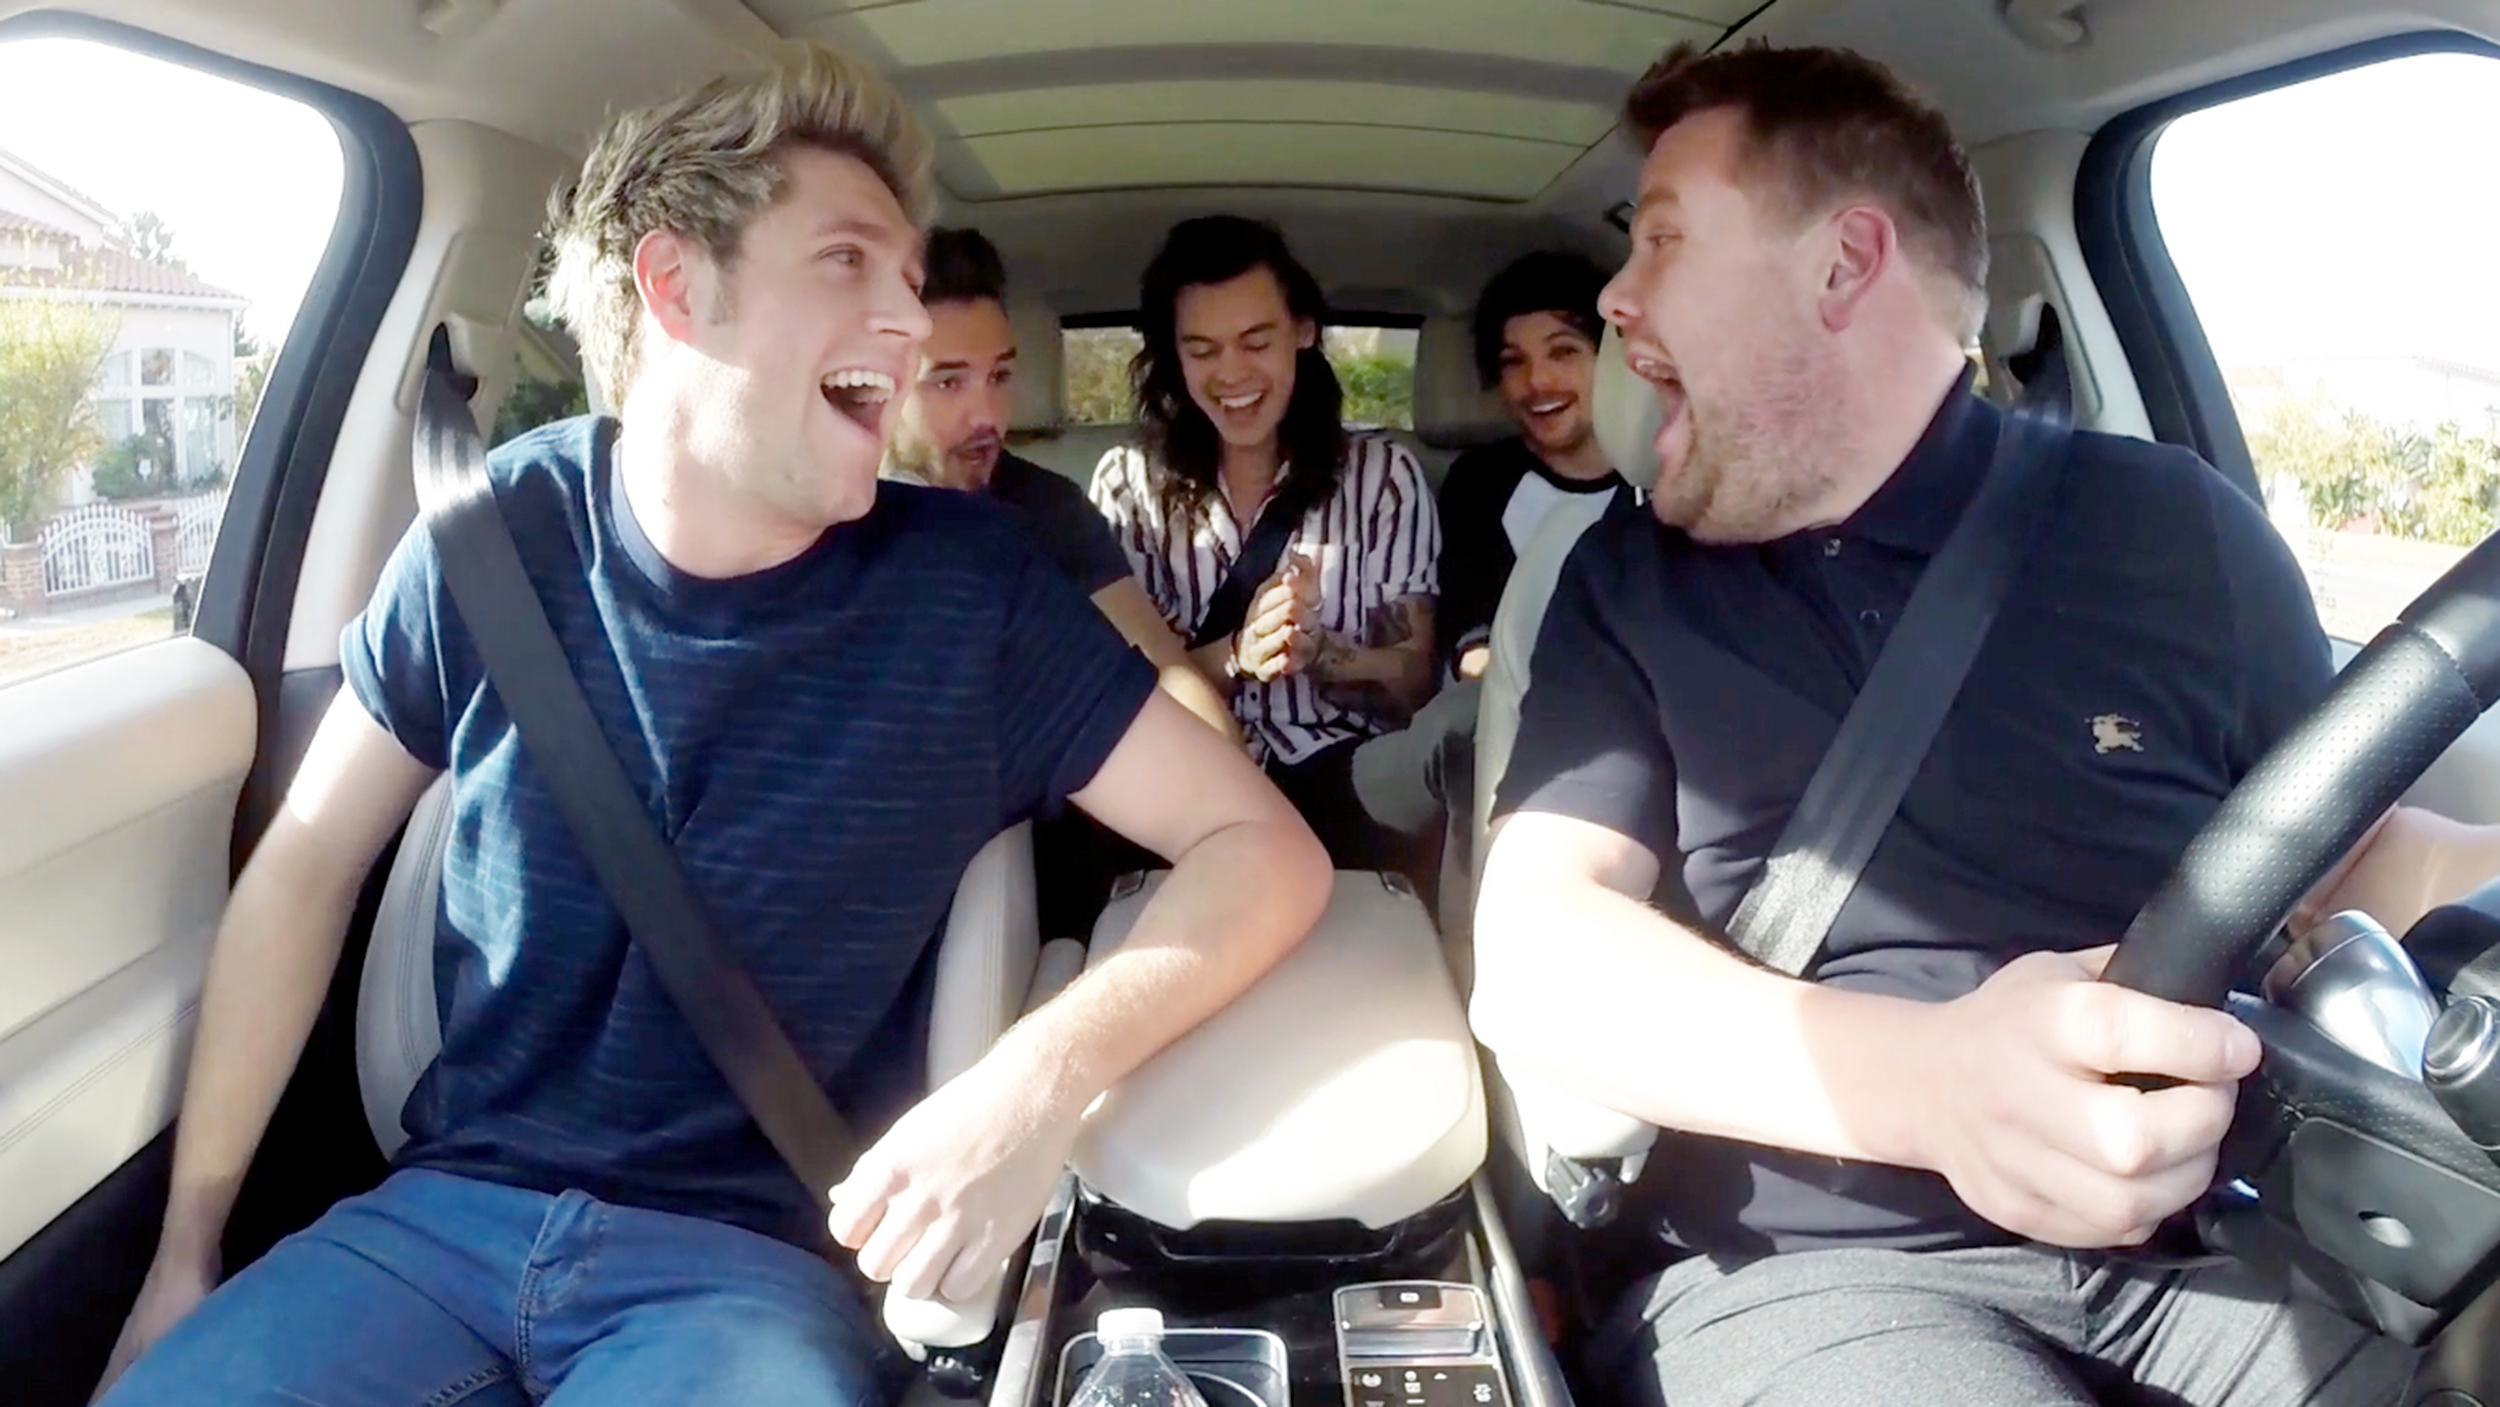 James Corden Joins One Direction For Hilarious Carpool Karaoke